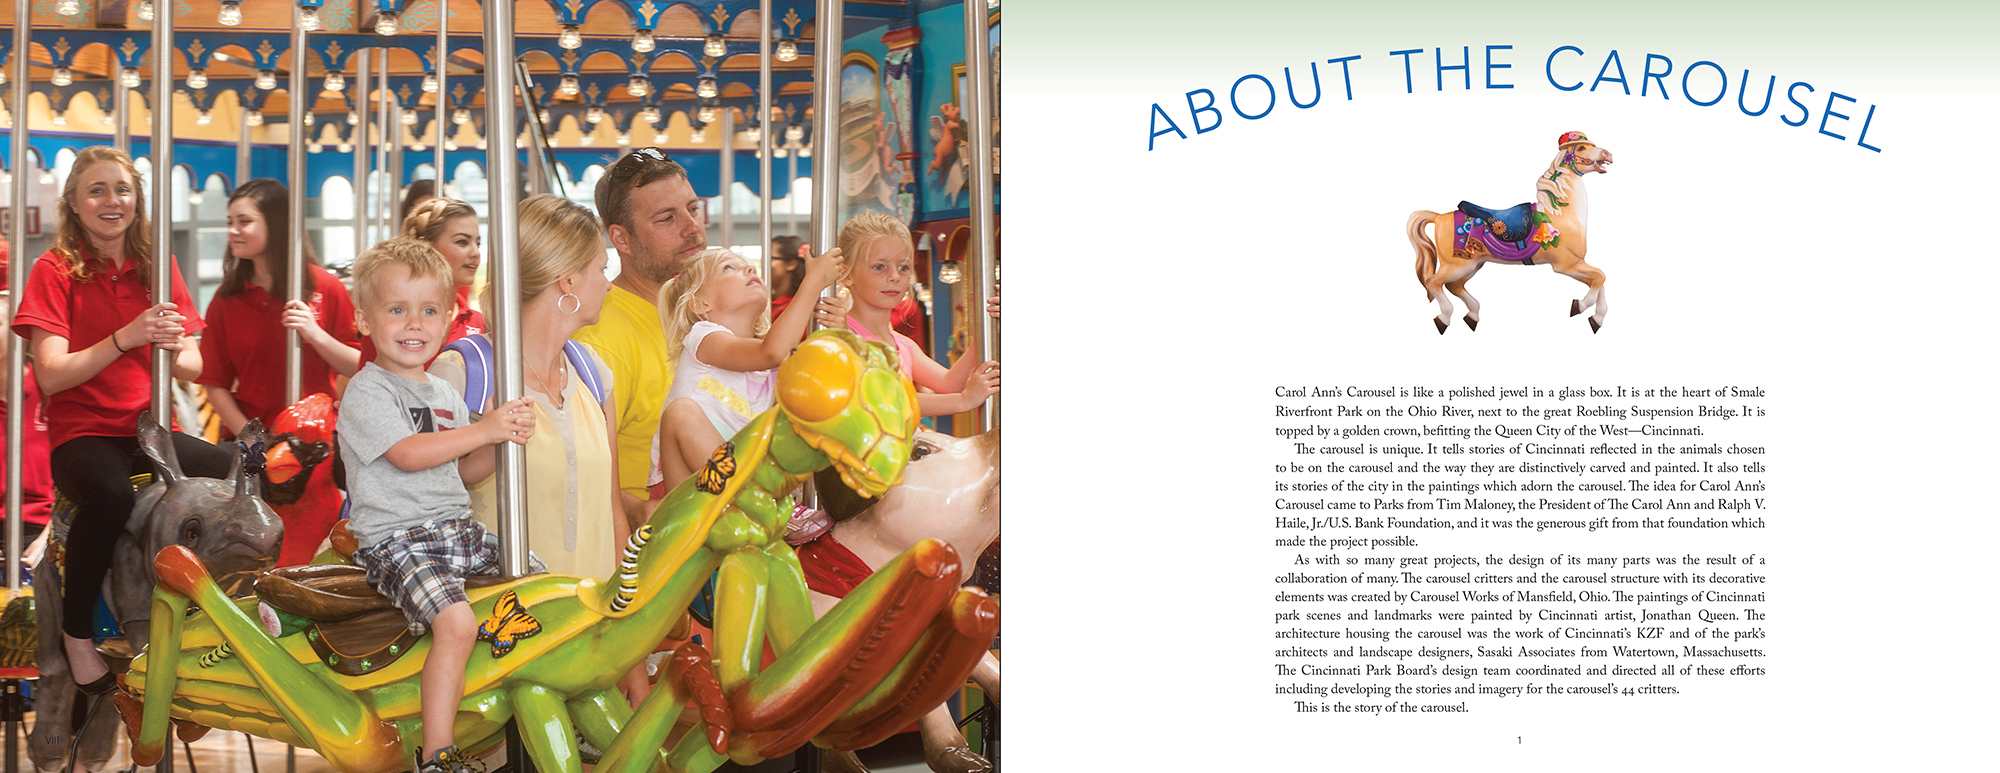 About the Carousel spread